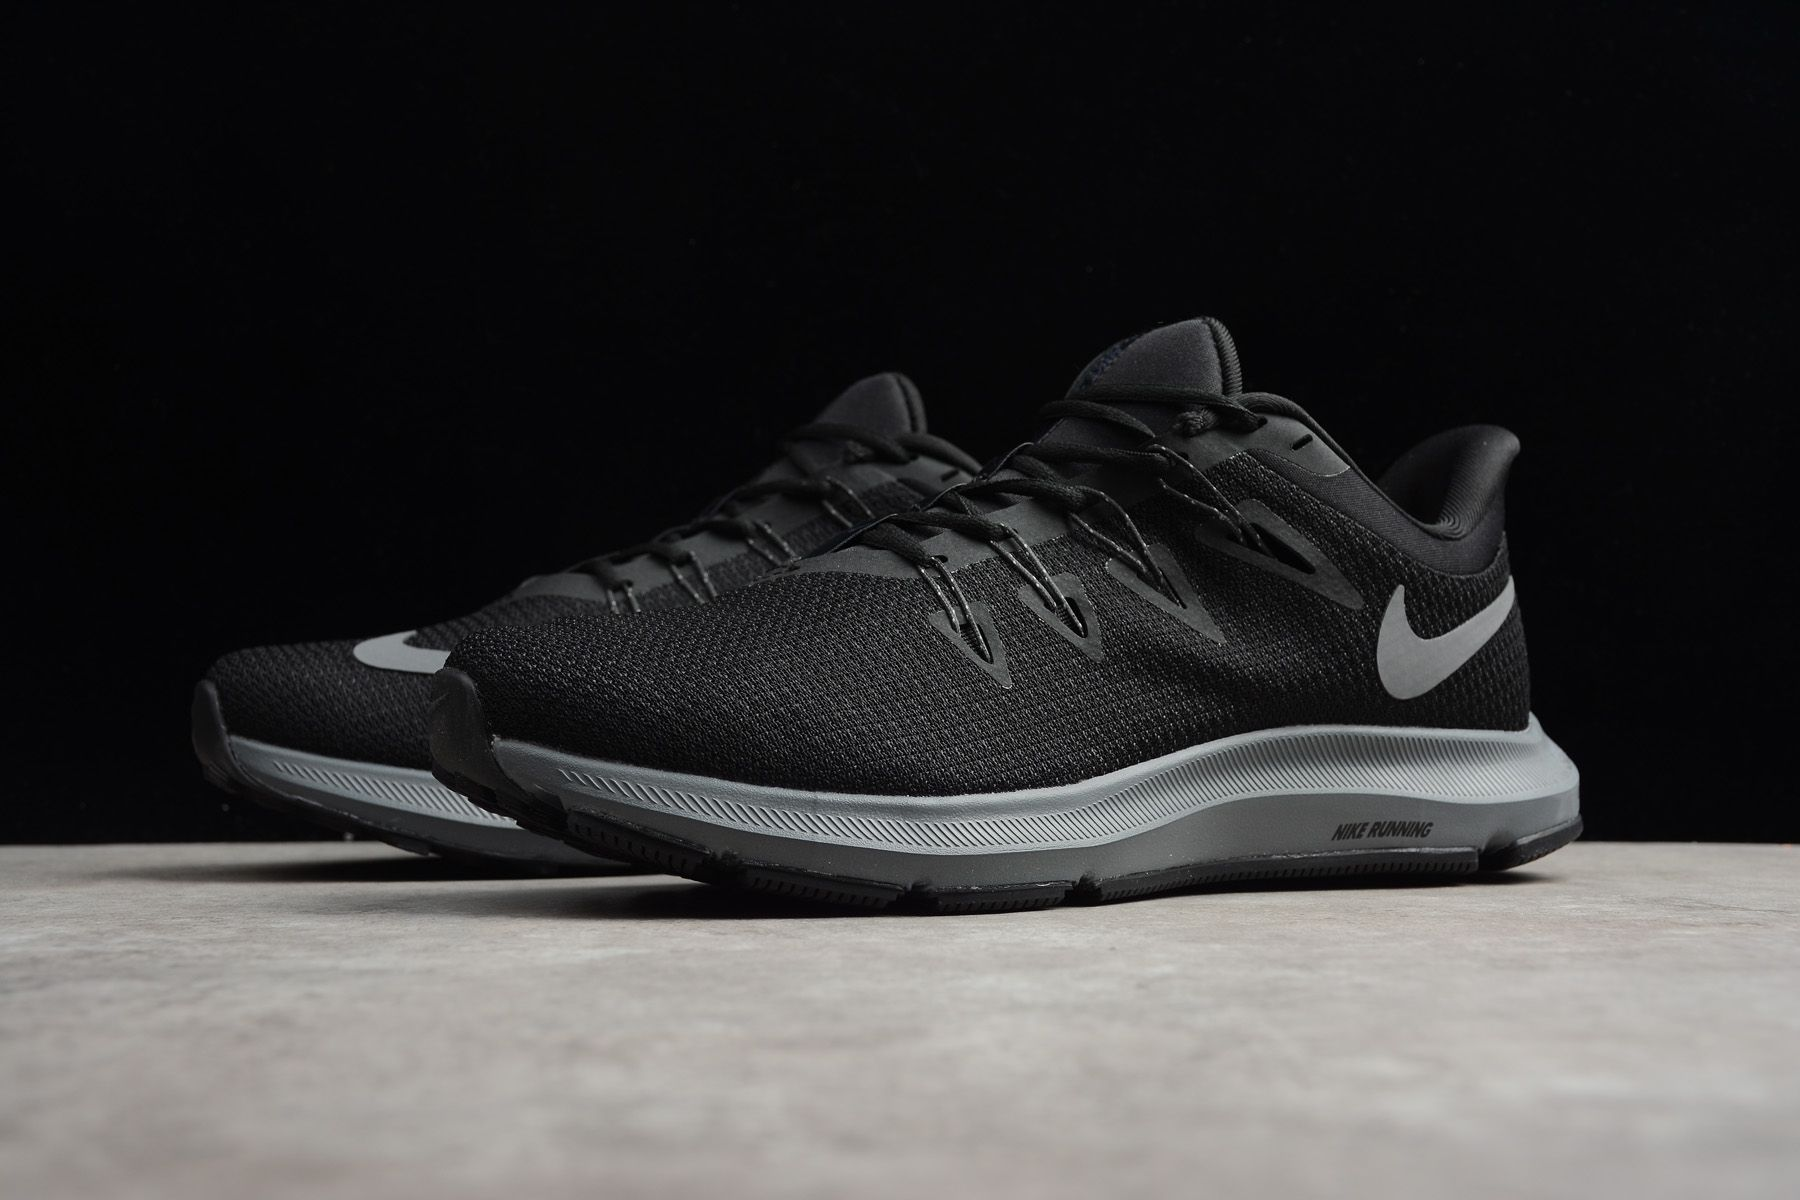 2ff4a4b1 Men's Nike Quest 1.5 Black/Anthracite-Cool Grey AA7403-002 | Nike ...